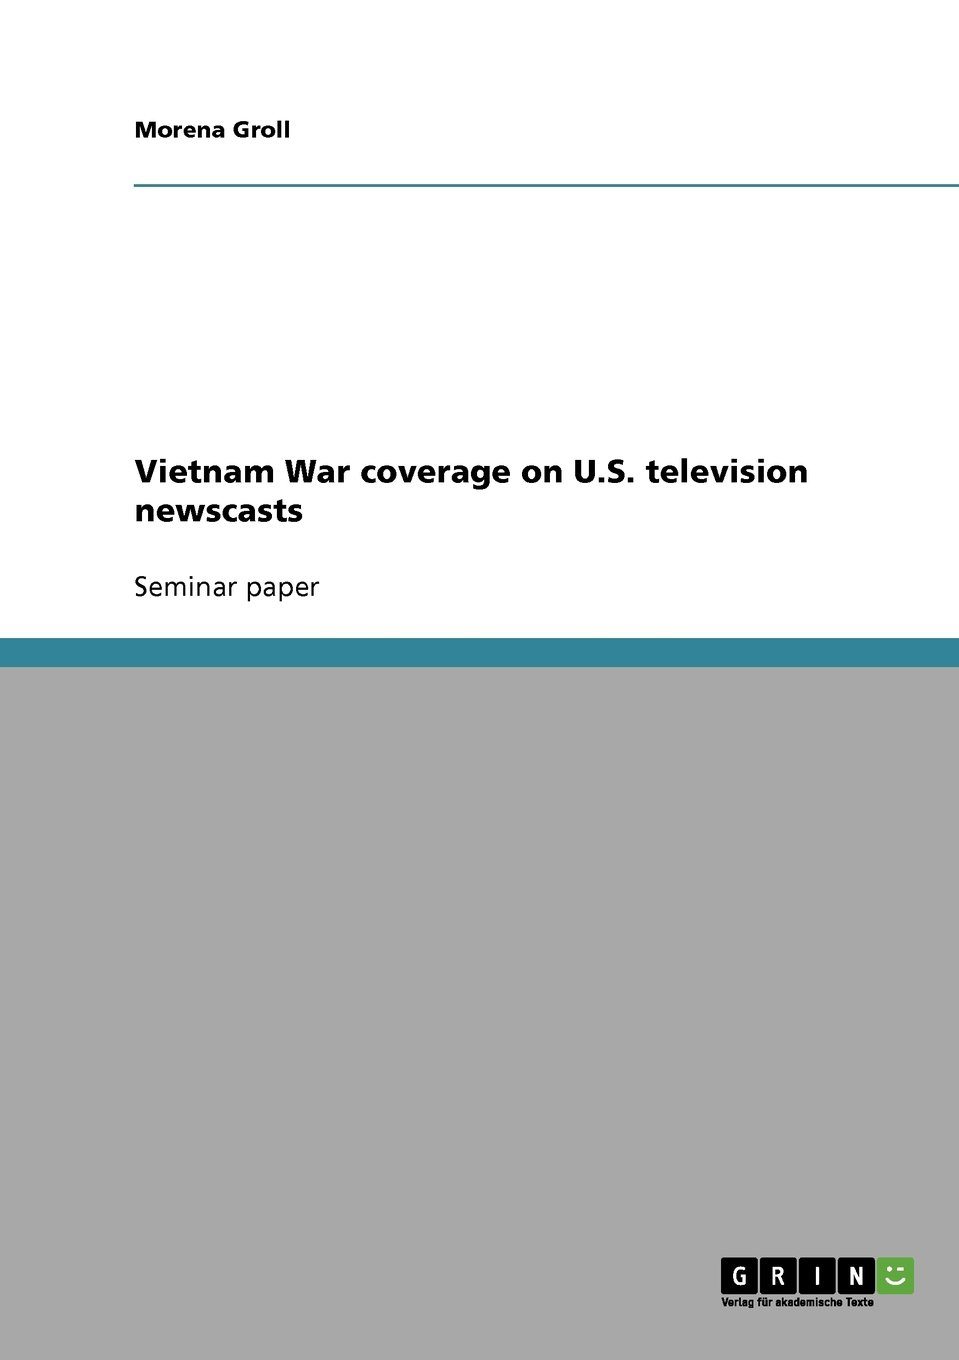 Vietnam War coverage on U.S. television newscasts by GRIN Publishing